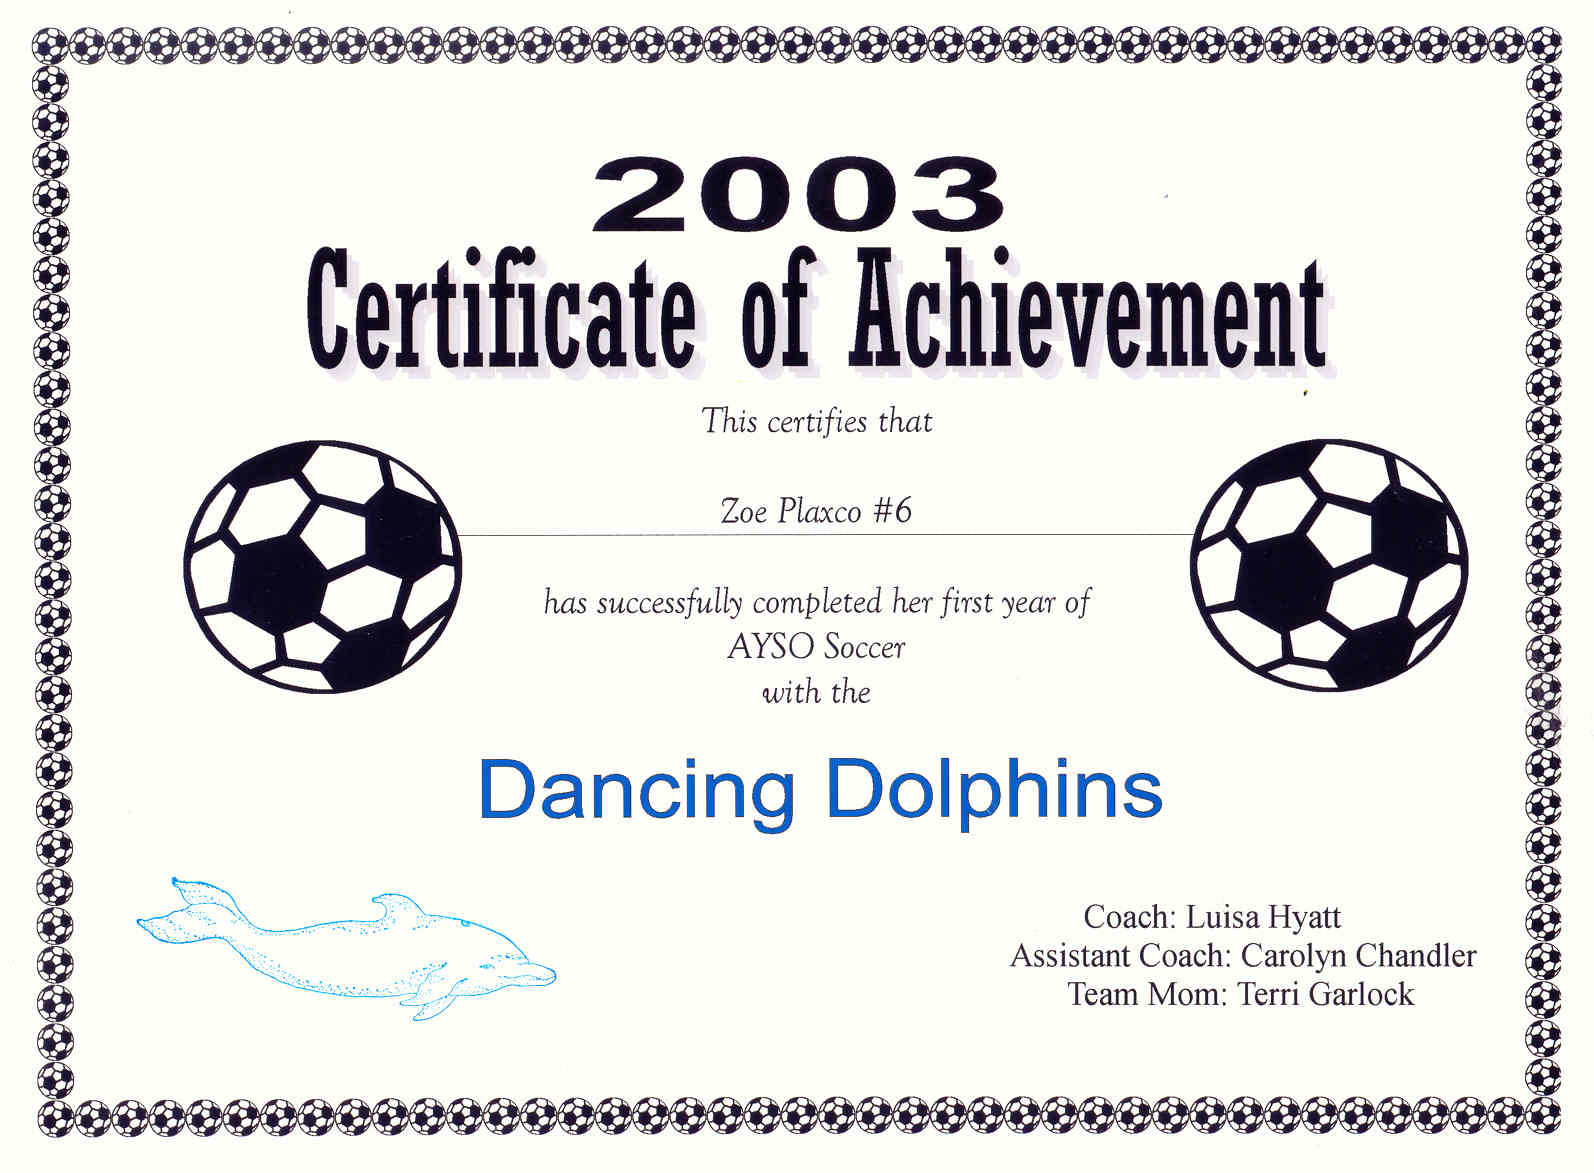 Printable soccer award northurthwall printable soccer award yelopaper Image collections